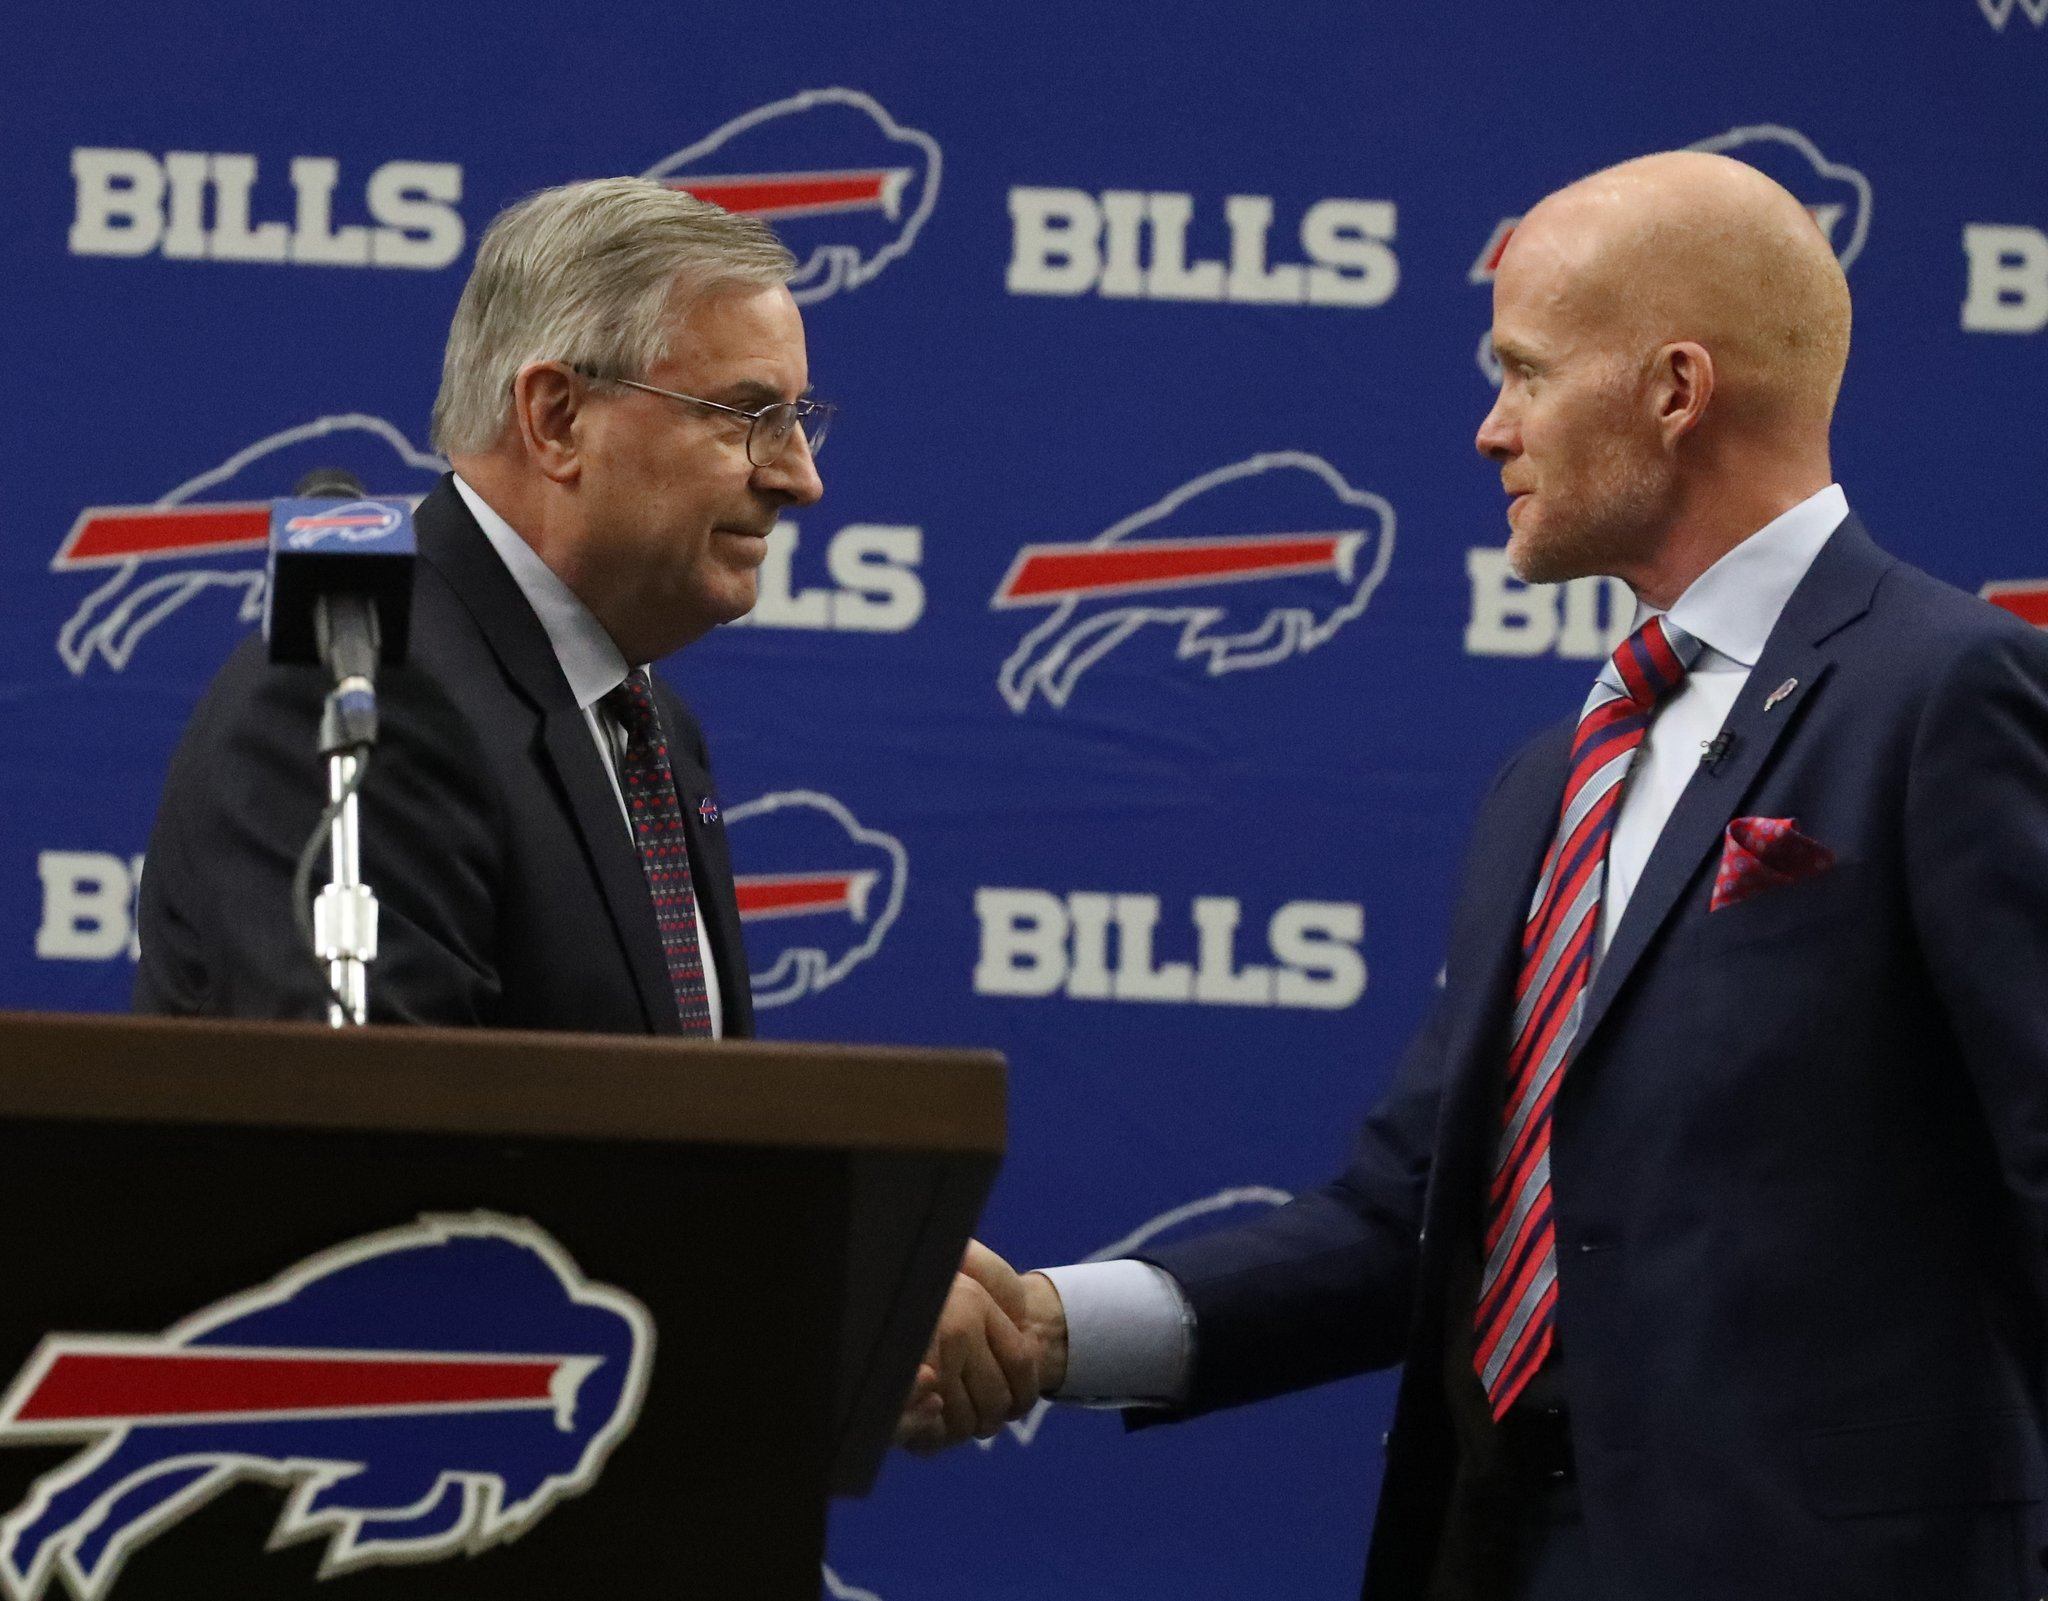 Bills owner Terry Pegula did not introduce Anthony Lynn as his new head coach. (James P. McCoy/Buffalo News)